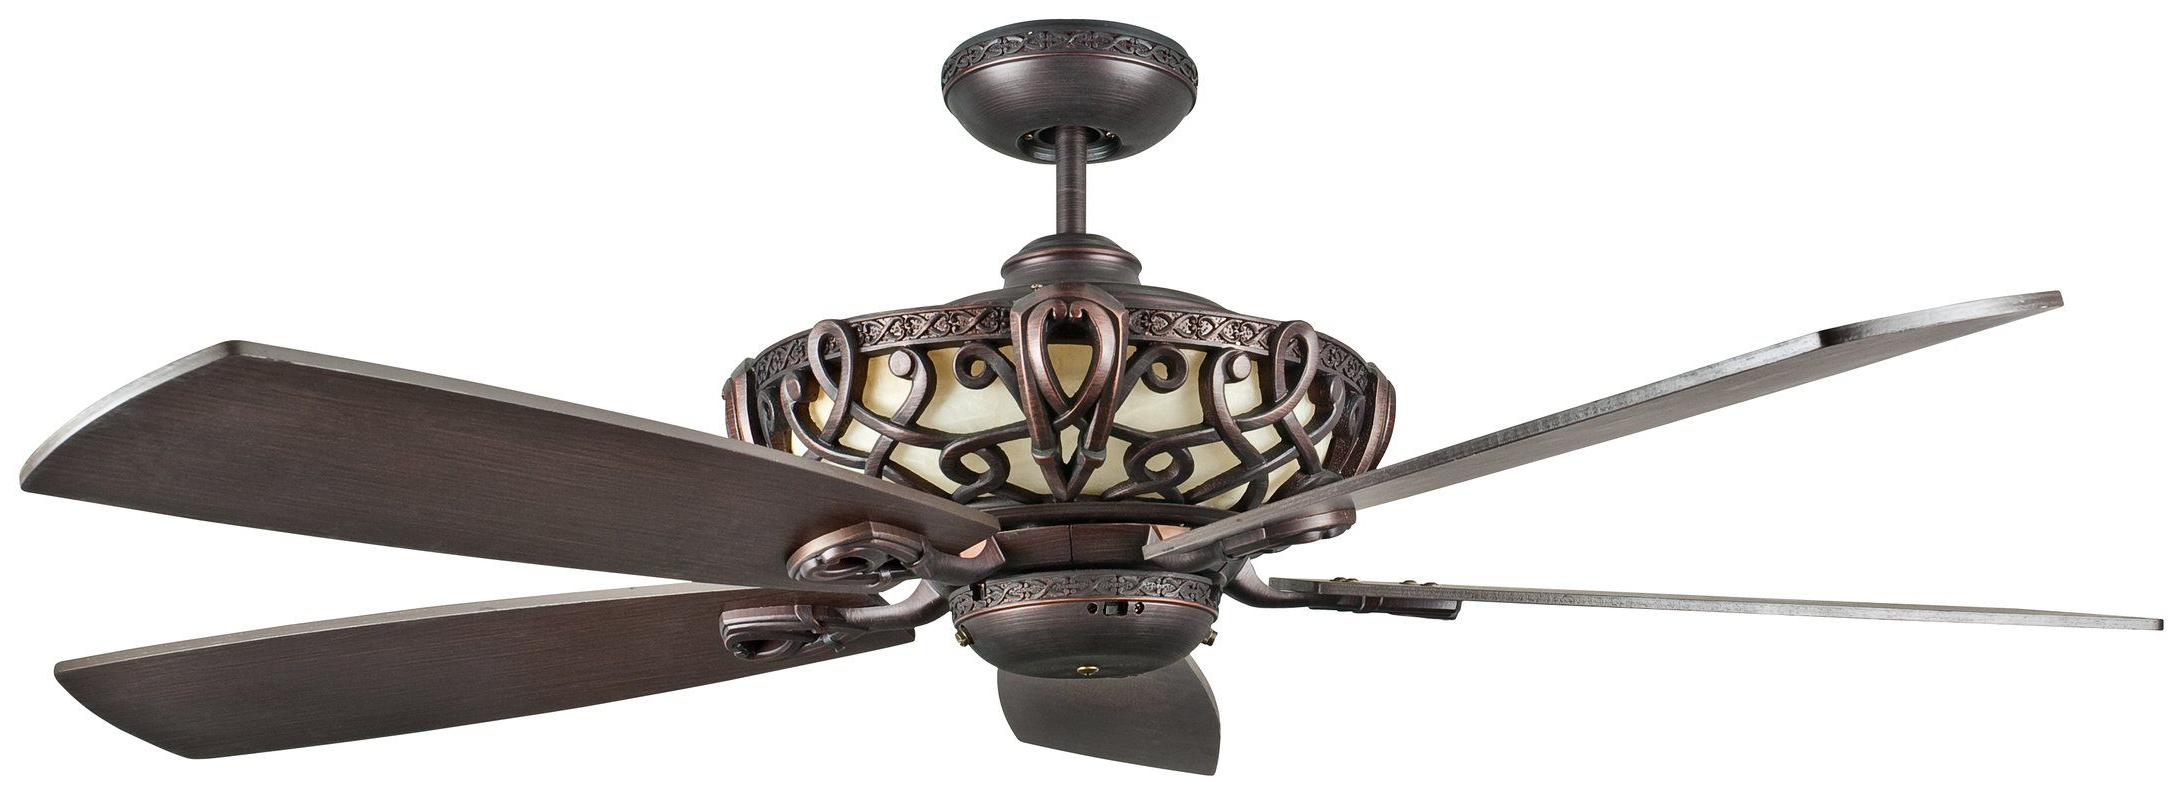 Design For Dunaghy 5 Blade Ceiling Fans (View 5 of 20)